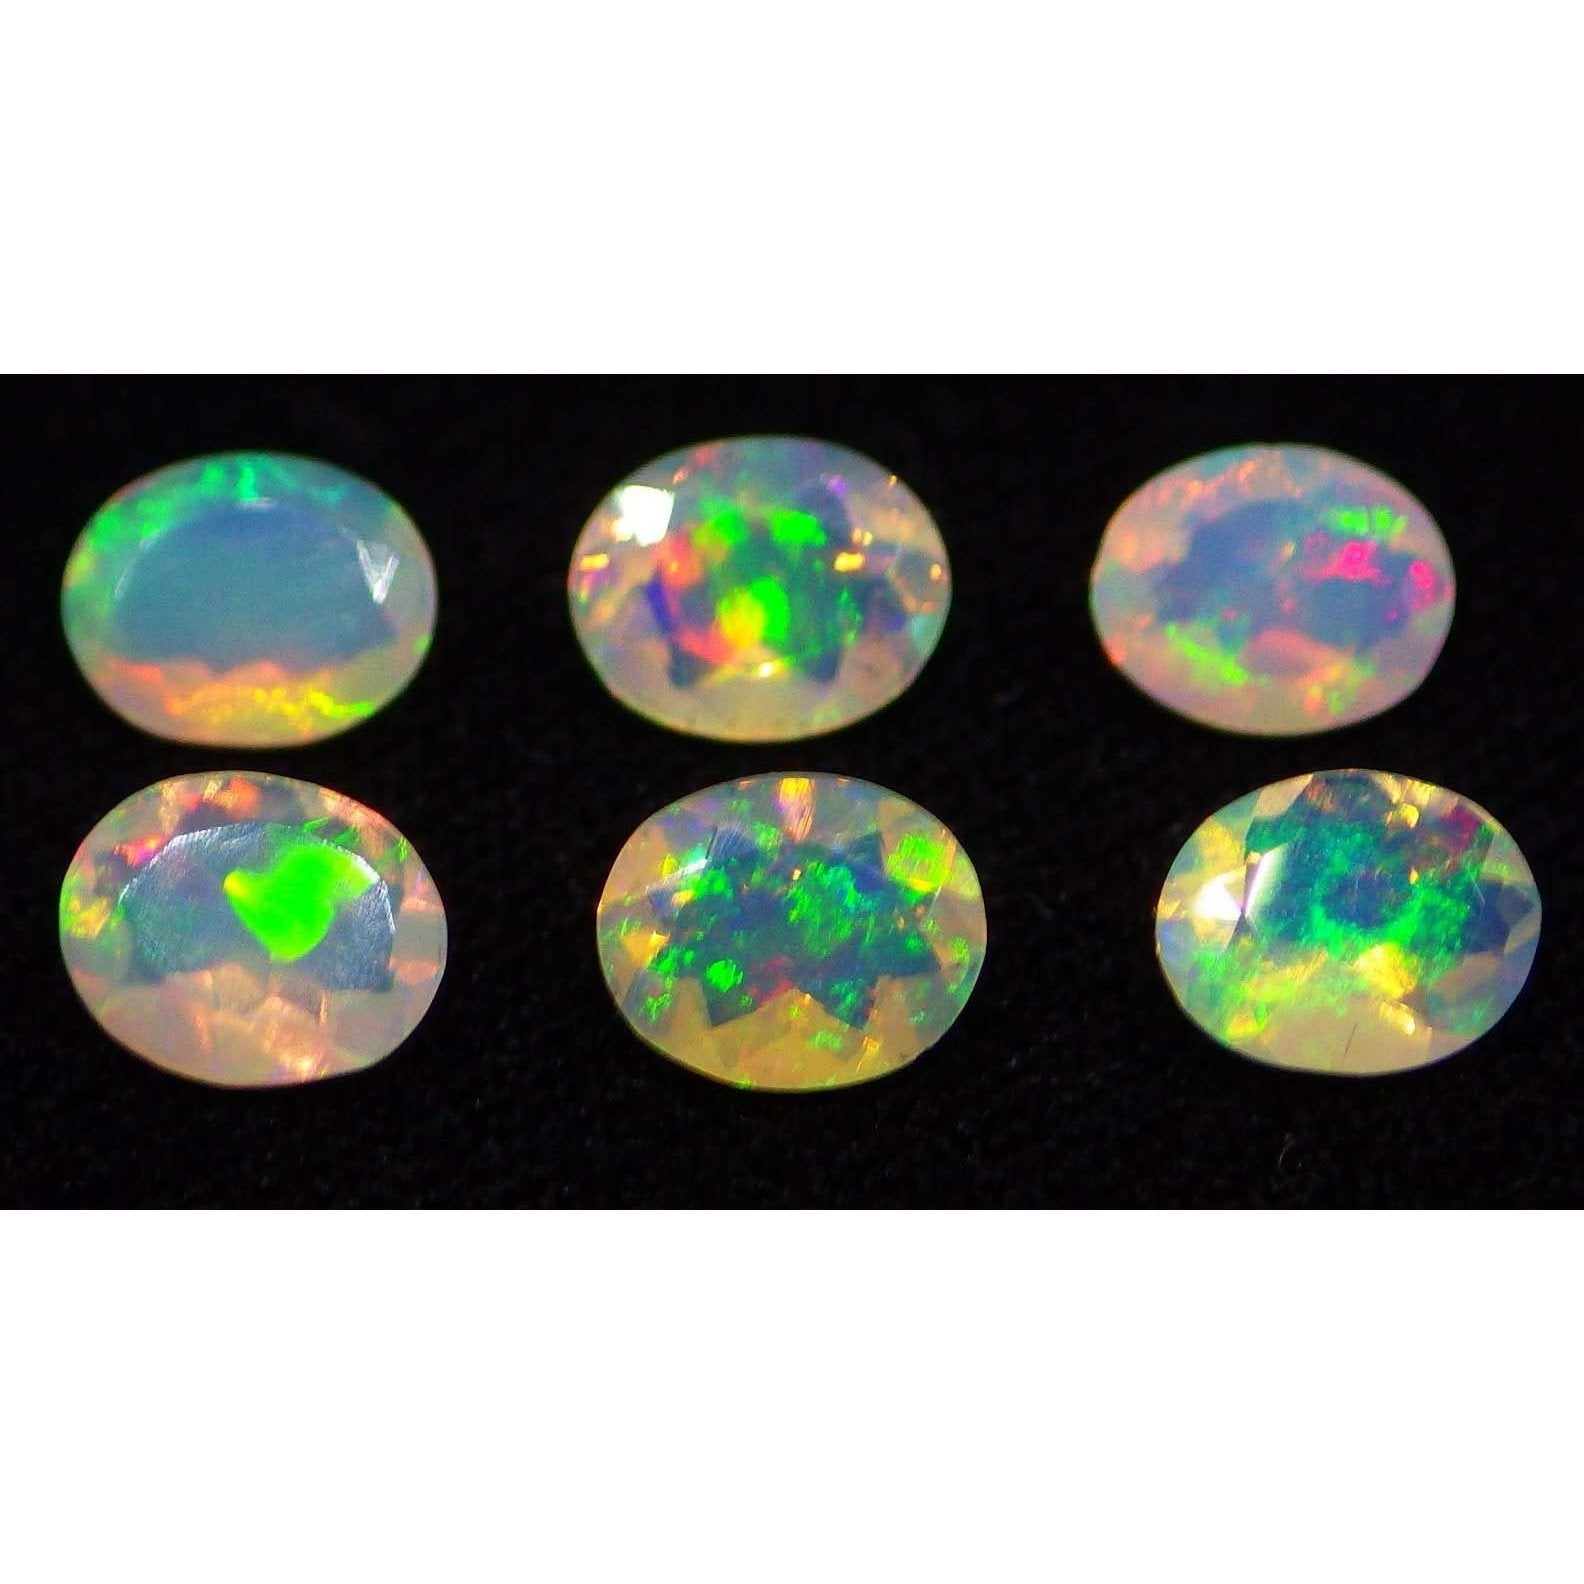 6 Stones - 1.14 ct Opal 5x4mm Faceted Oval